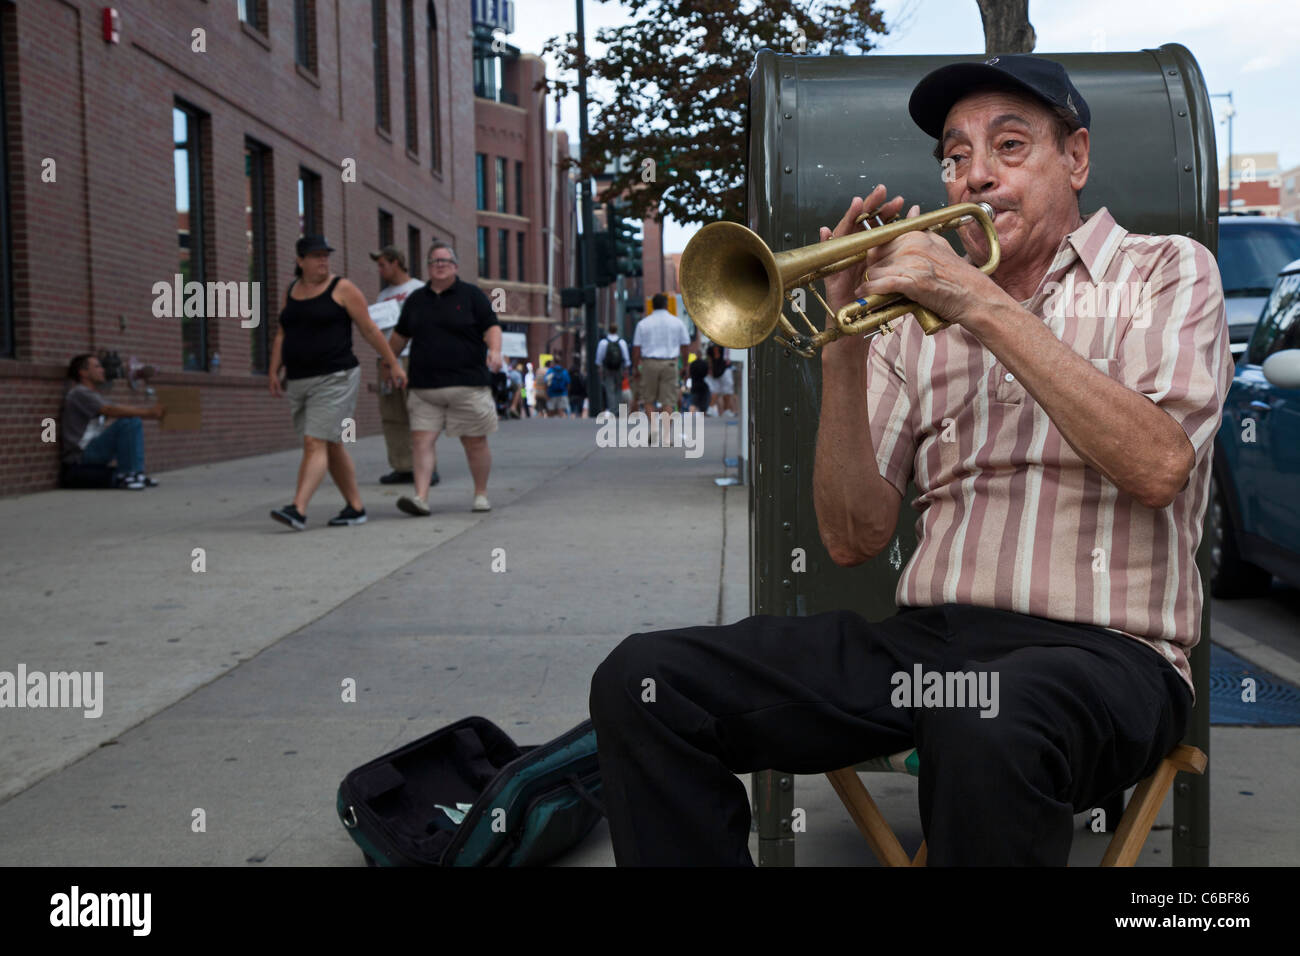 Denver, Colorado - A street musician plays the trumpet for tips as fans arrive at Coors Field for a baseball game. - Stock Image